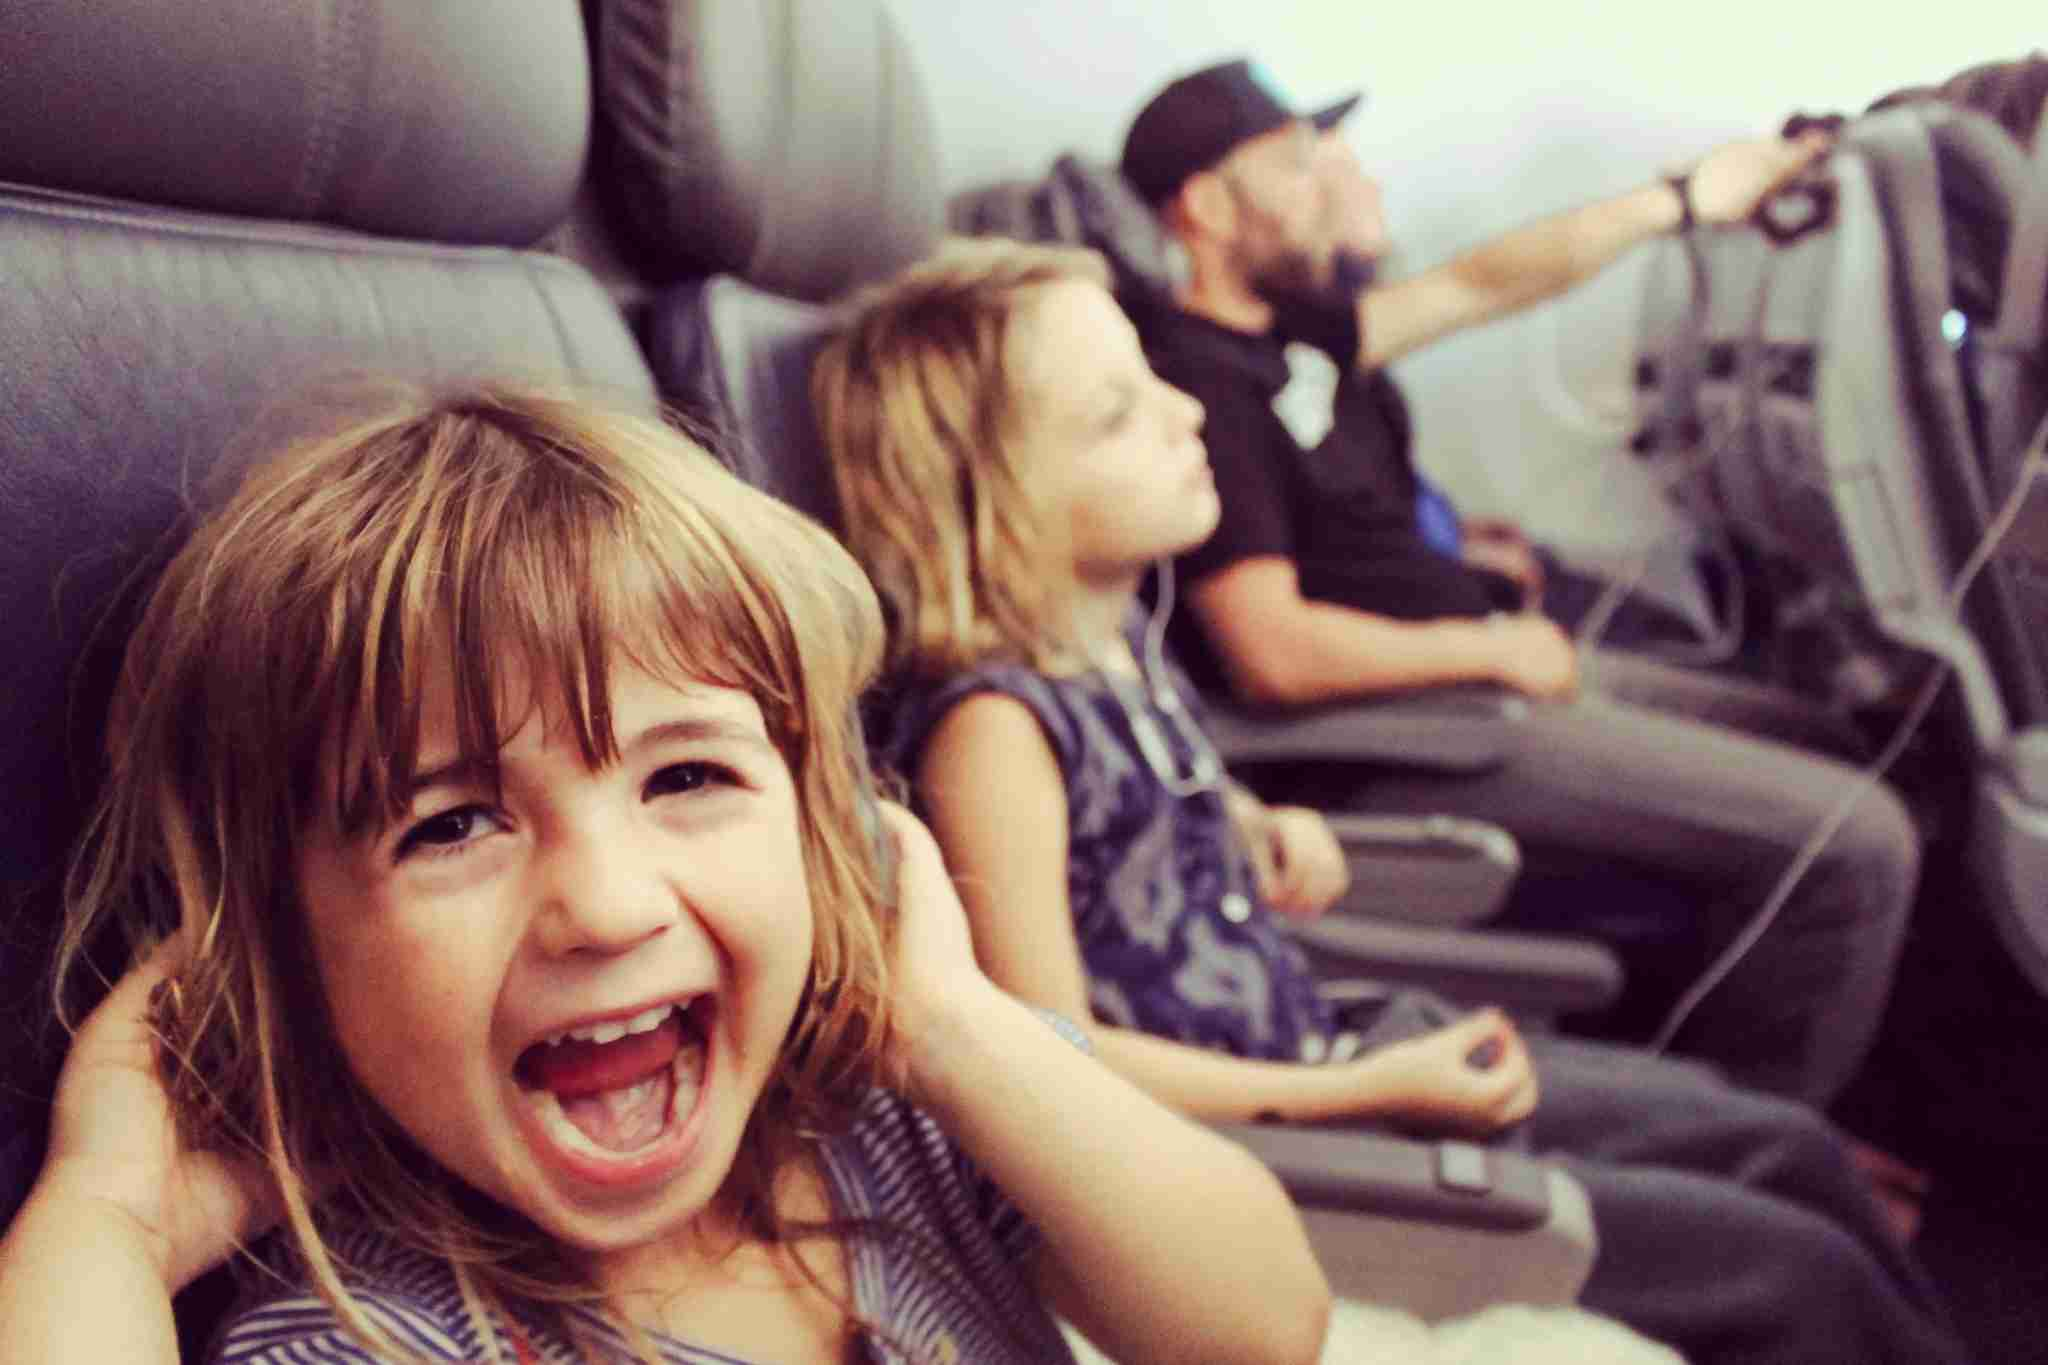 For some TPG Lounge members, seeing kids up front is their biggest nightmare. (Photo by Lisa5201 / Getty Images)